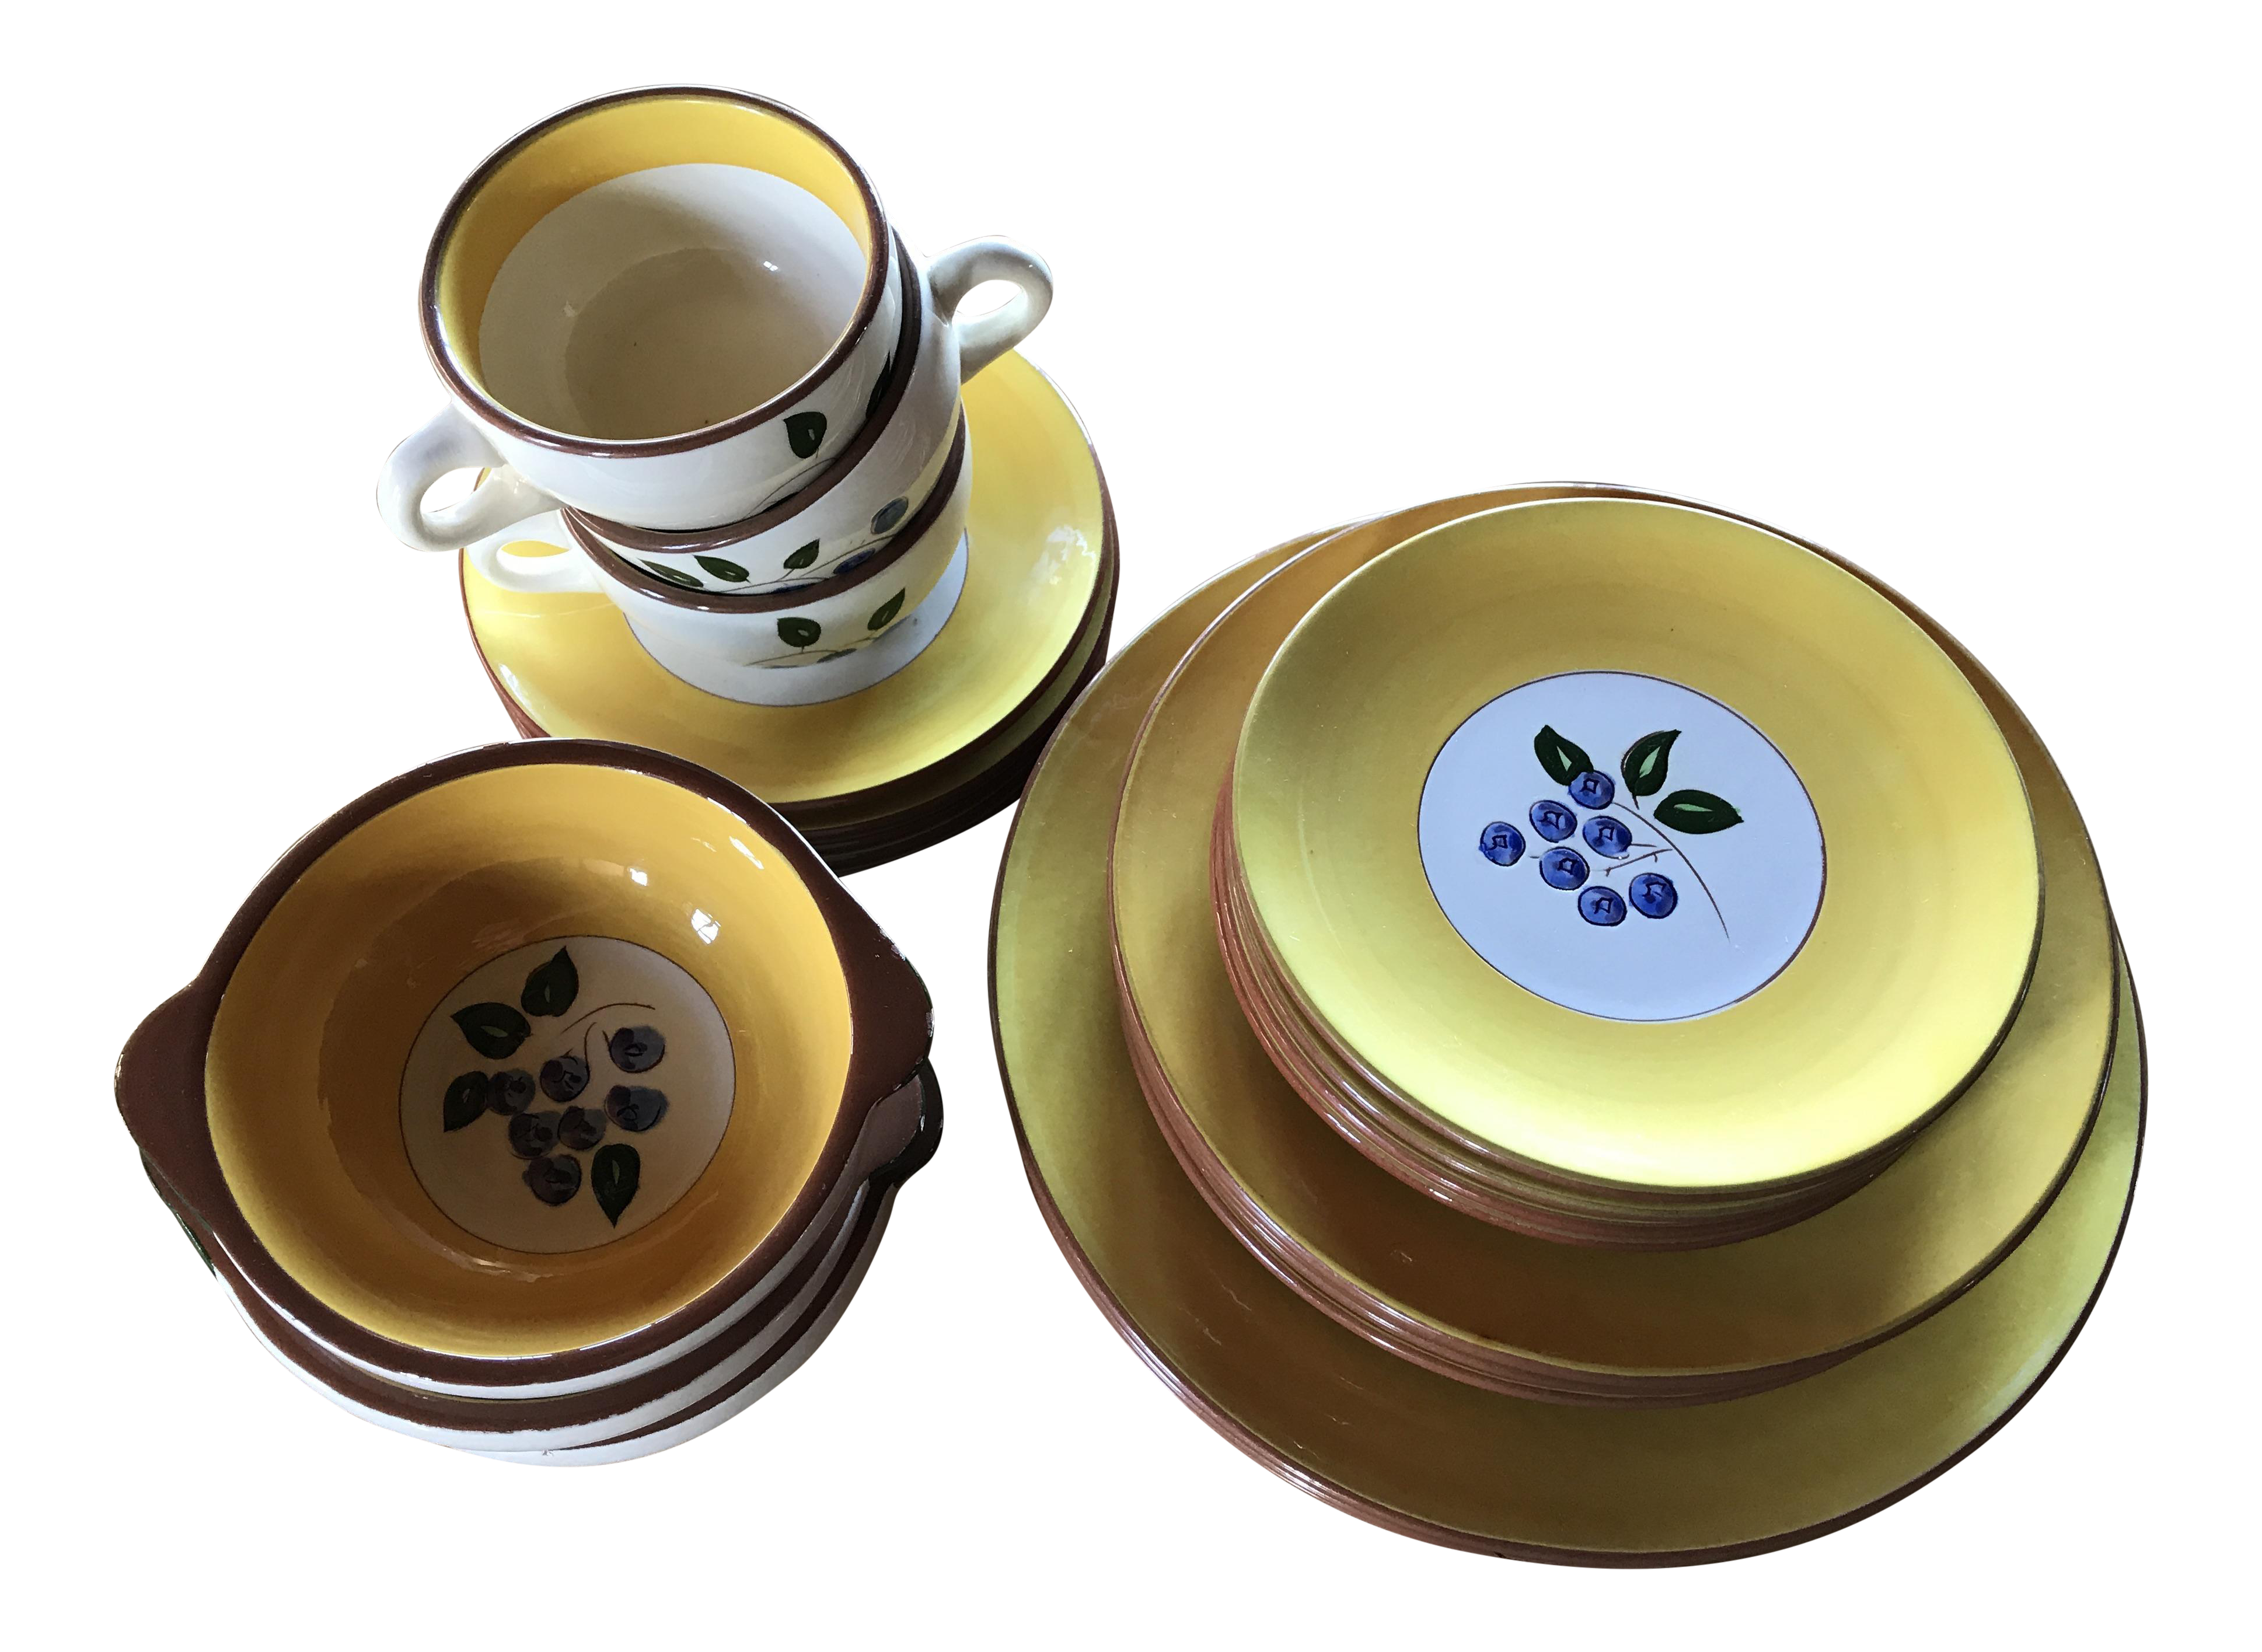 Stangl Pottery Blueberry Motif Yellow Dinnerware - Set of 22  sc 1 st  Chairish & Stangl Pottery Blueberry Motif Yellow Dinnerware - Set of 22 ...